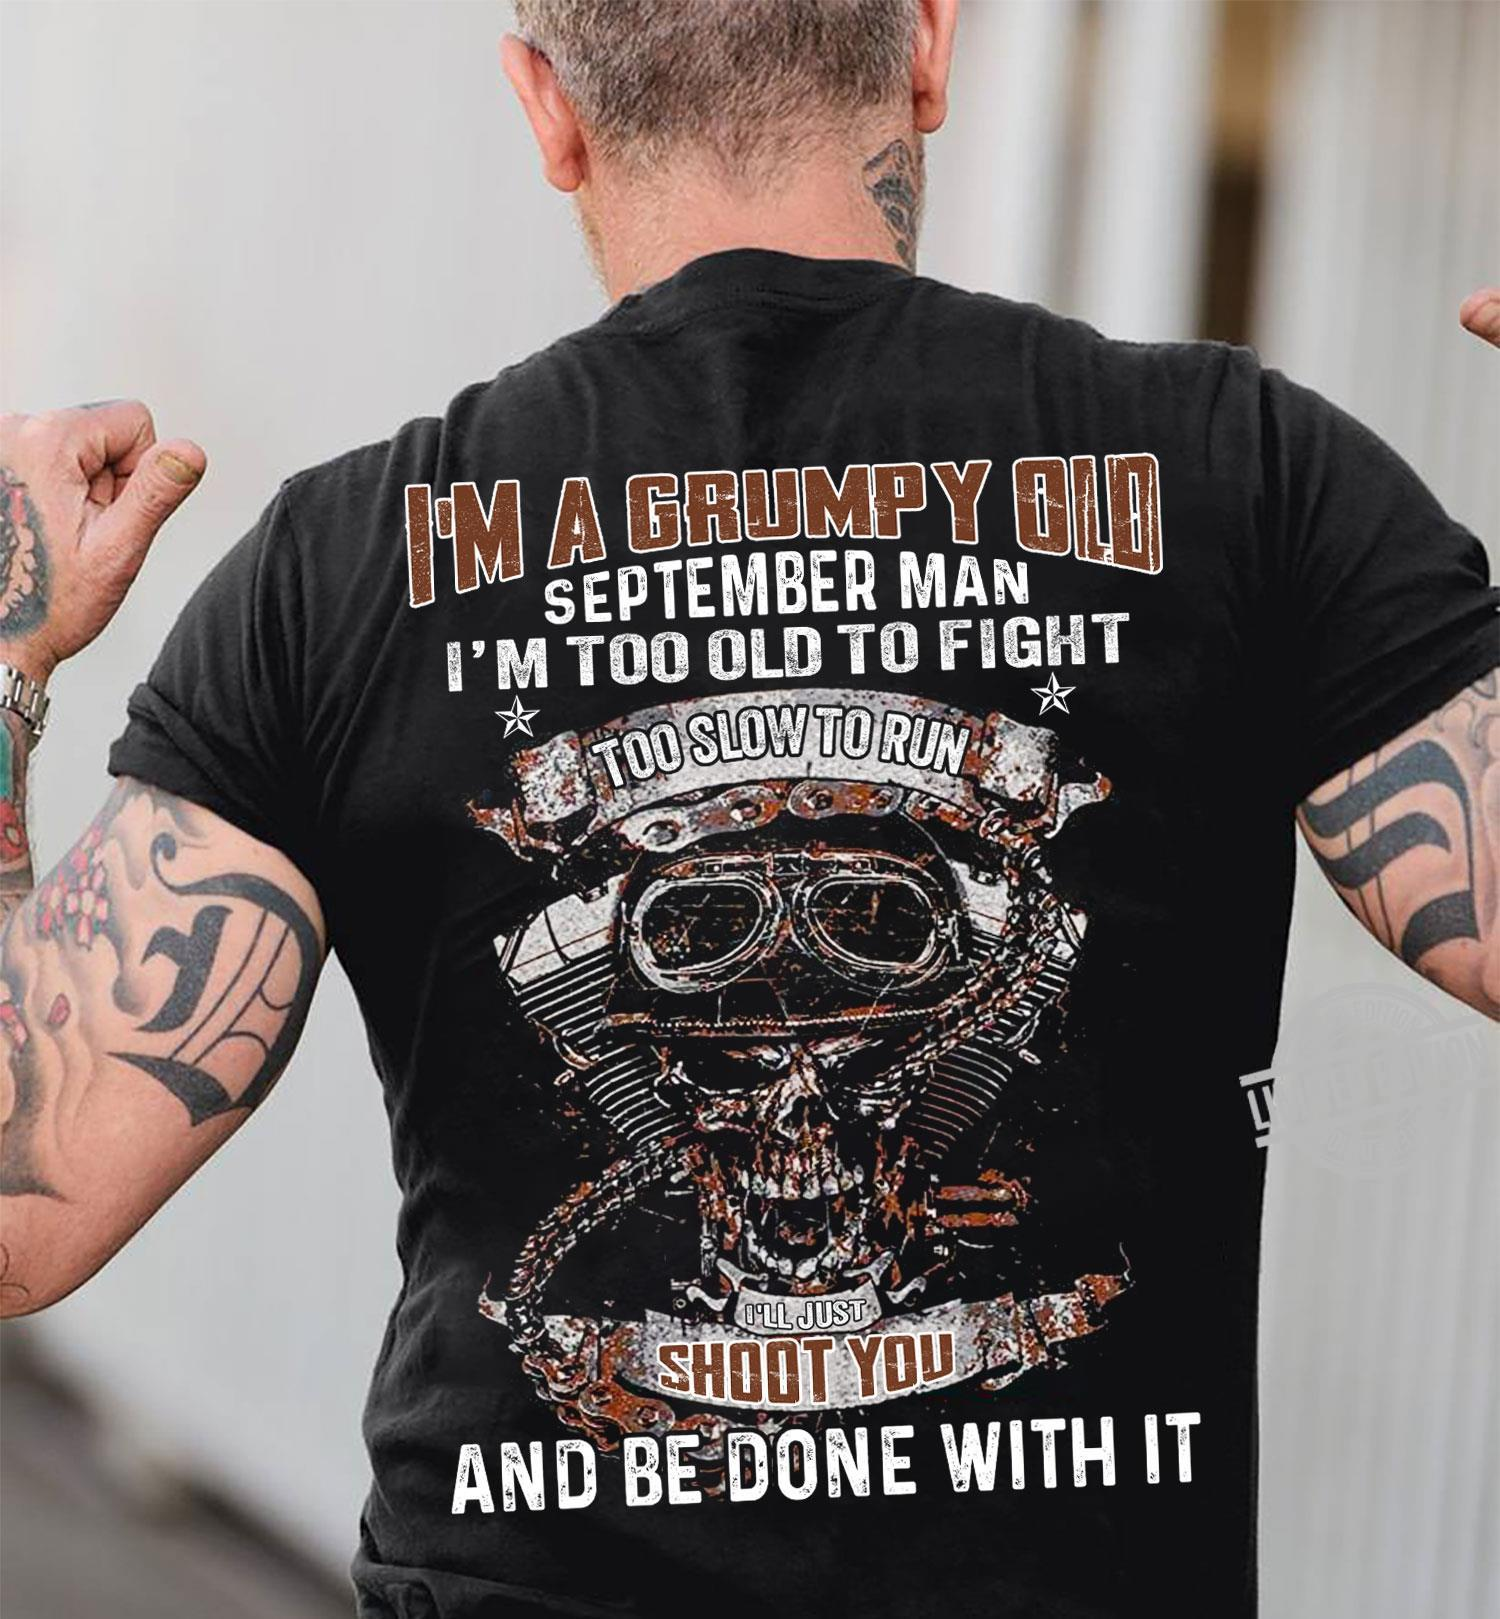 I'm A Grumpy Old Sptember Man I'm Too Old To Fight Too Slow To Run I'll Just Shoot You And Be Done With It Shirt